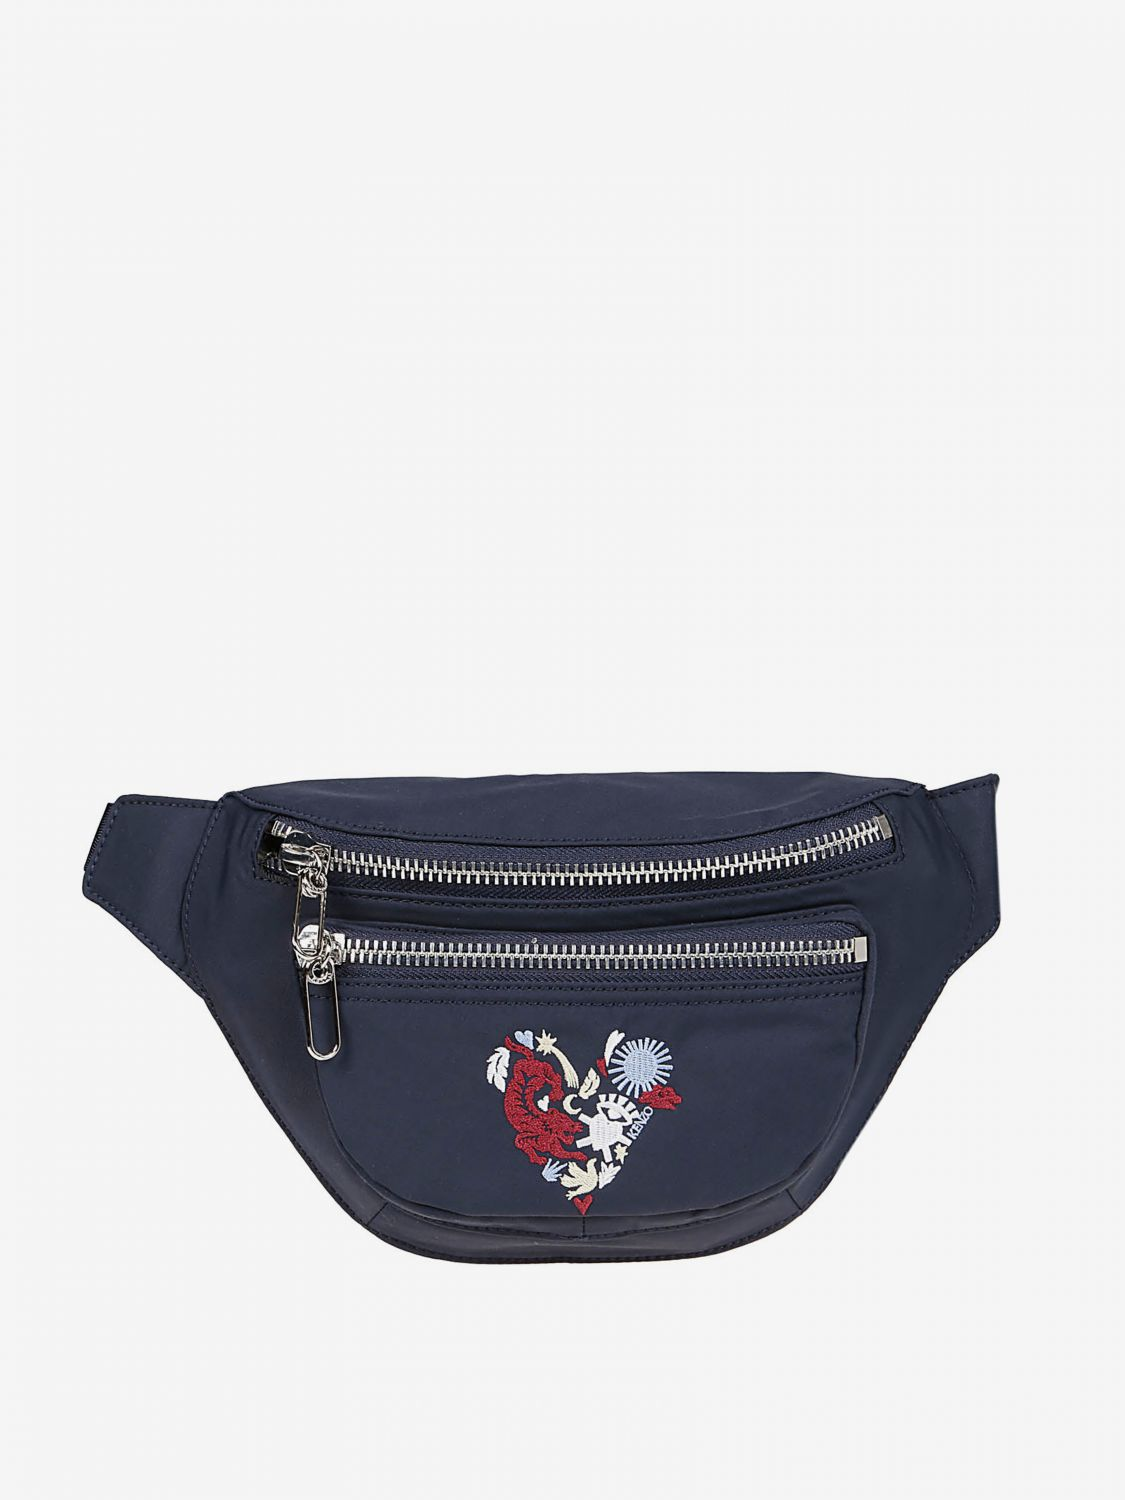 Kenzo cotton belt bag with heart logo print blue 1